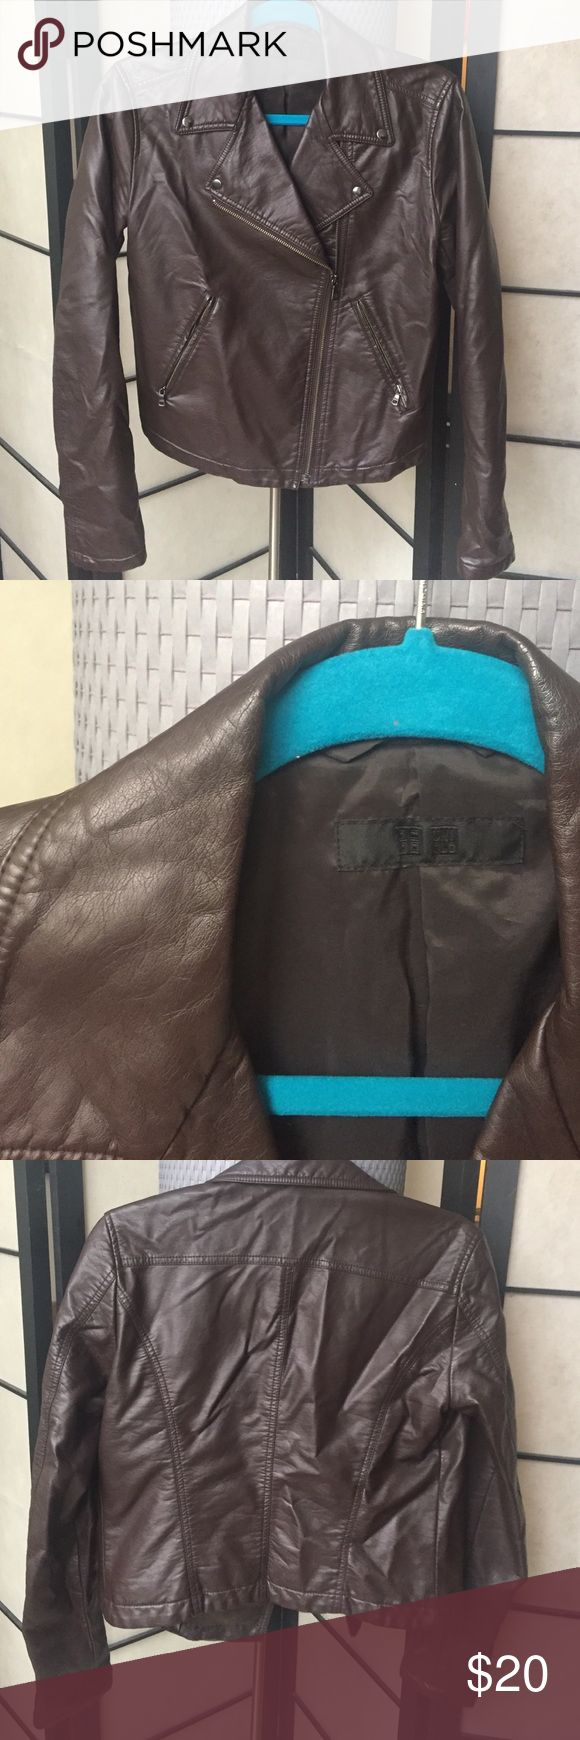 Faux/Fake leather moto jacket Stretchy brown faux leather jacket with polyester lining. Worn a few times then gains too much weight to keep it! Looks fab with floral dresses and tight skinny jeans! Uniqlo Jackets & Coats